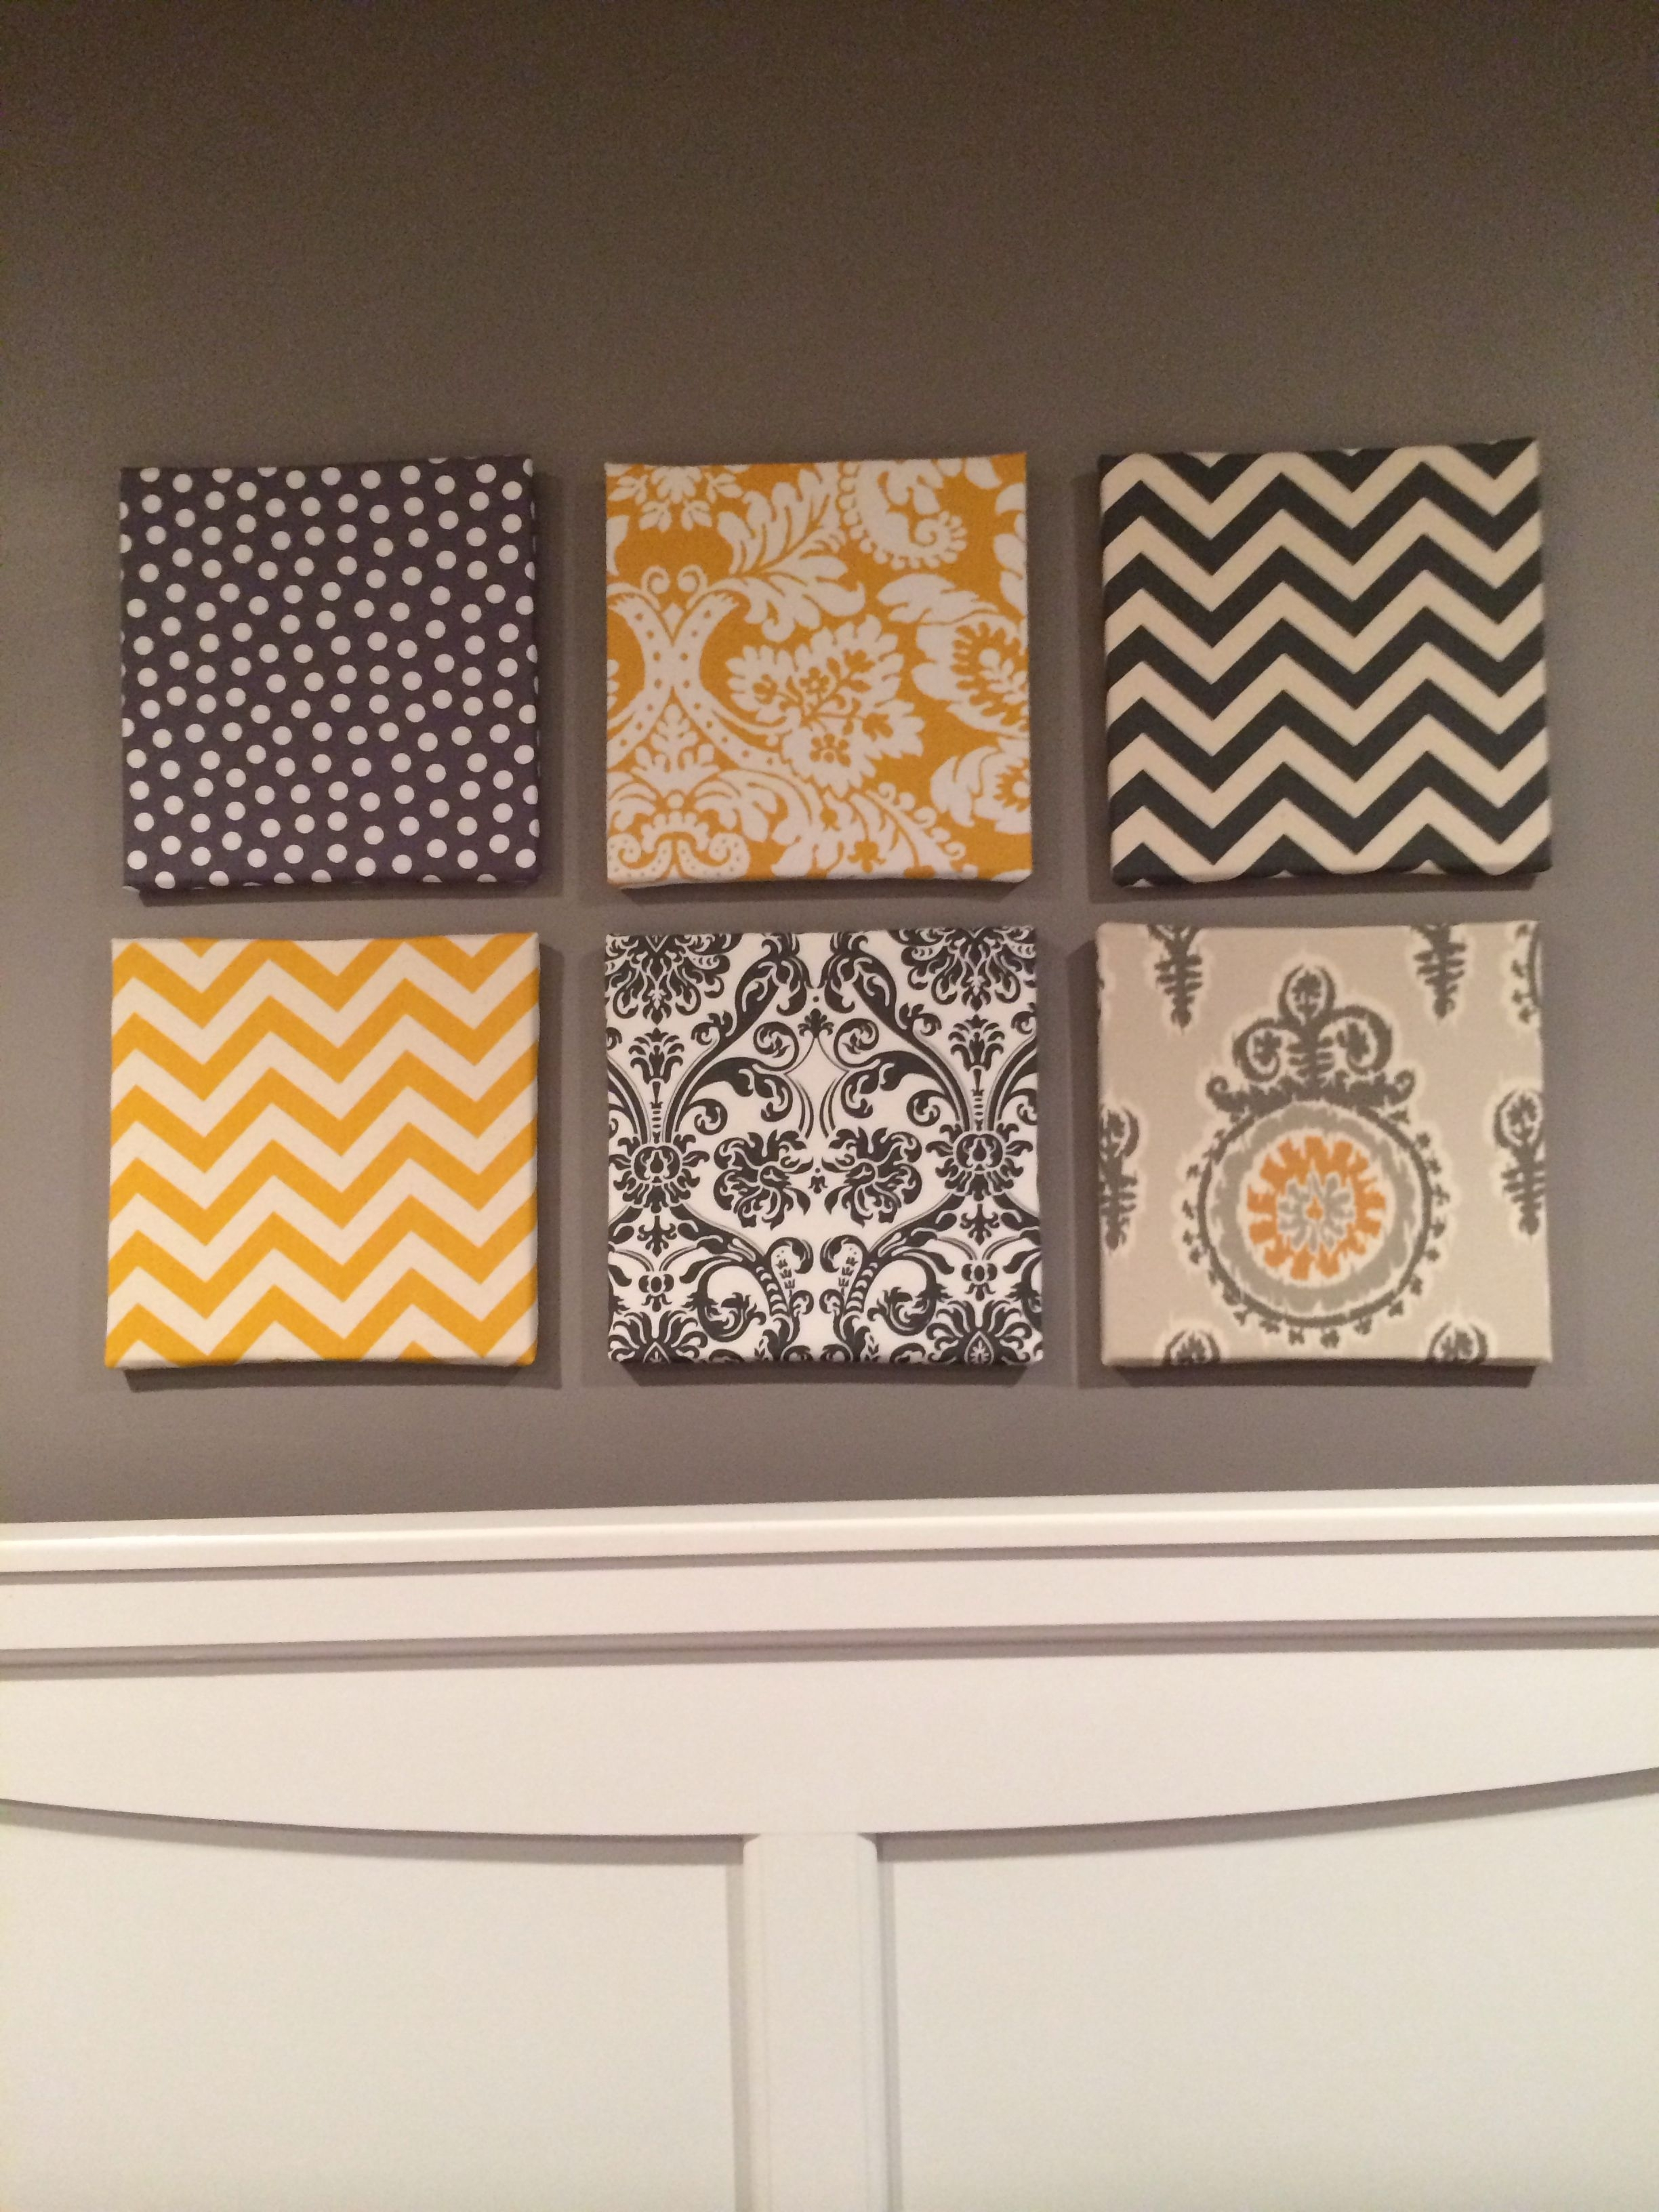 My Fabric Over Canvas Wall Art For My Gray And Yellow Themed Room Pertaining To Recent Canvas Wall Art With Fabric (Gallery 8 of 15)